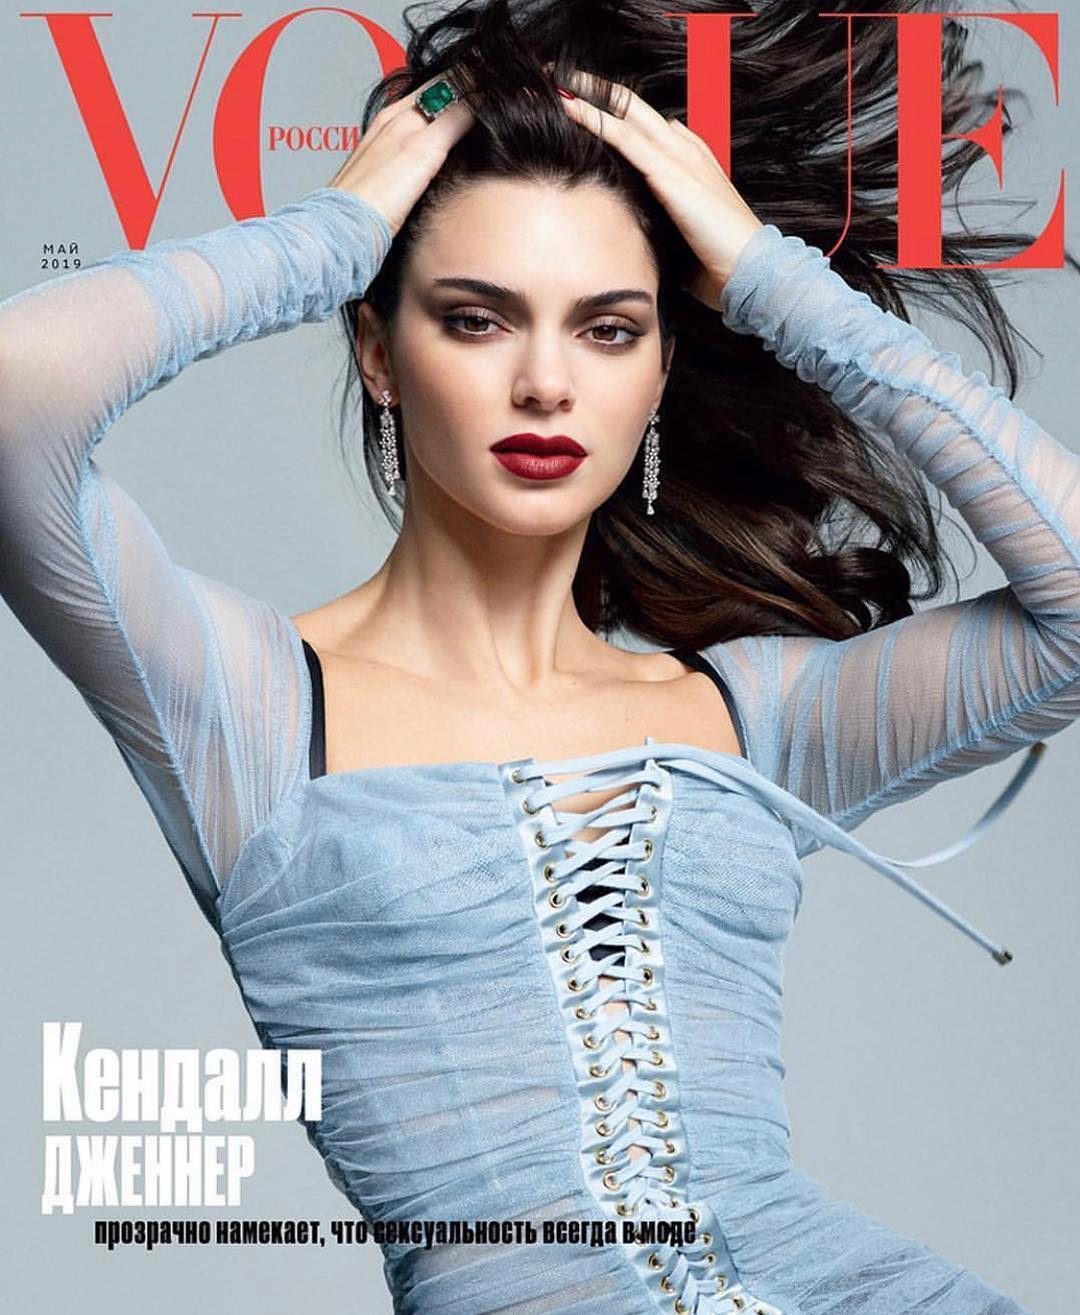 Kendall Jenner is the Cover Girl of Vogue Magazine Russia May 2019 Issue 1